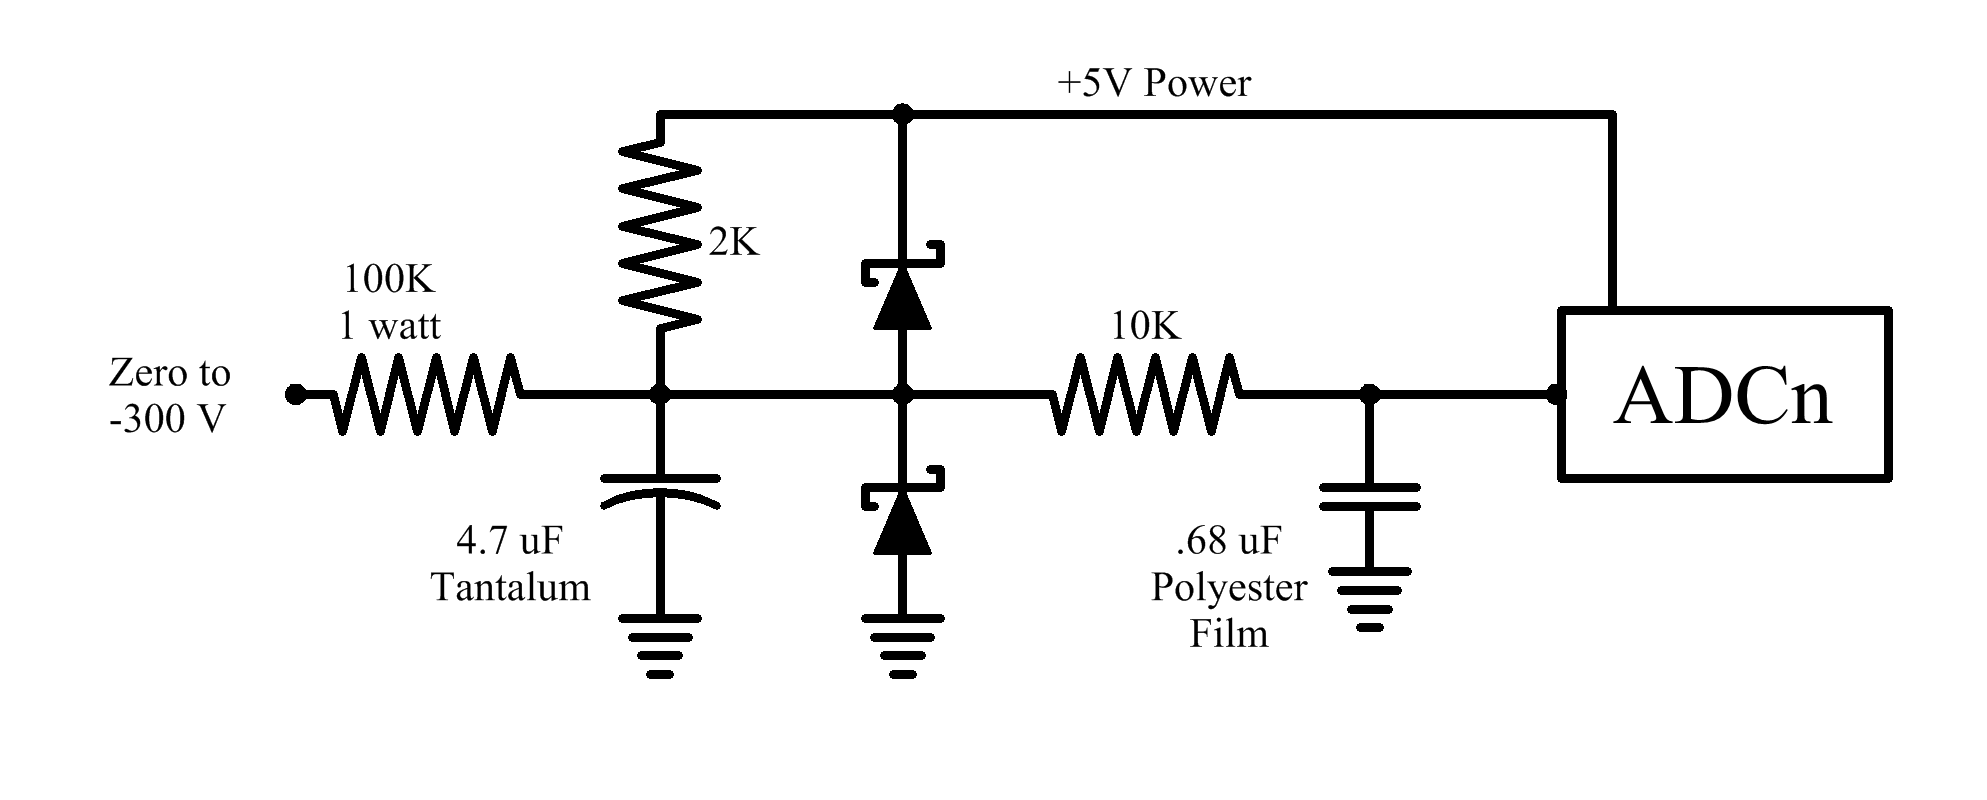 this is a simple voltage divider circuit